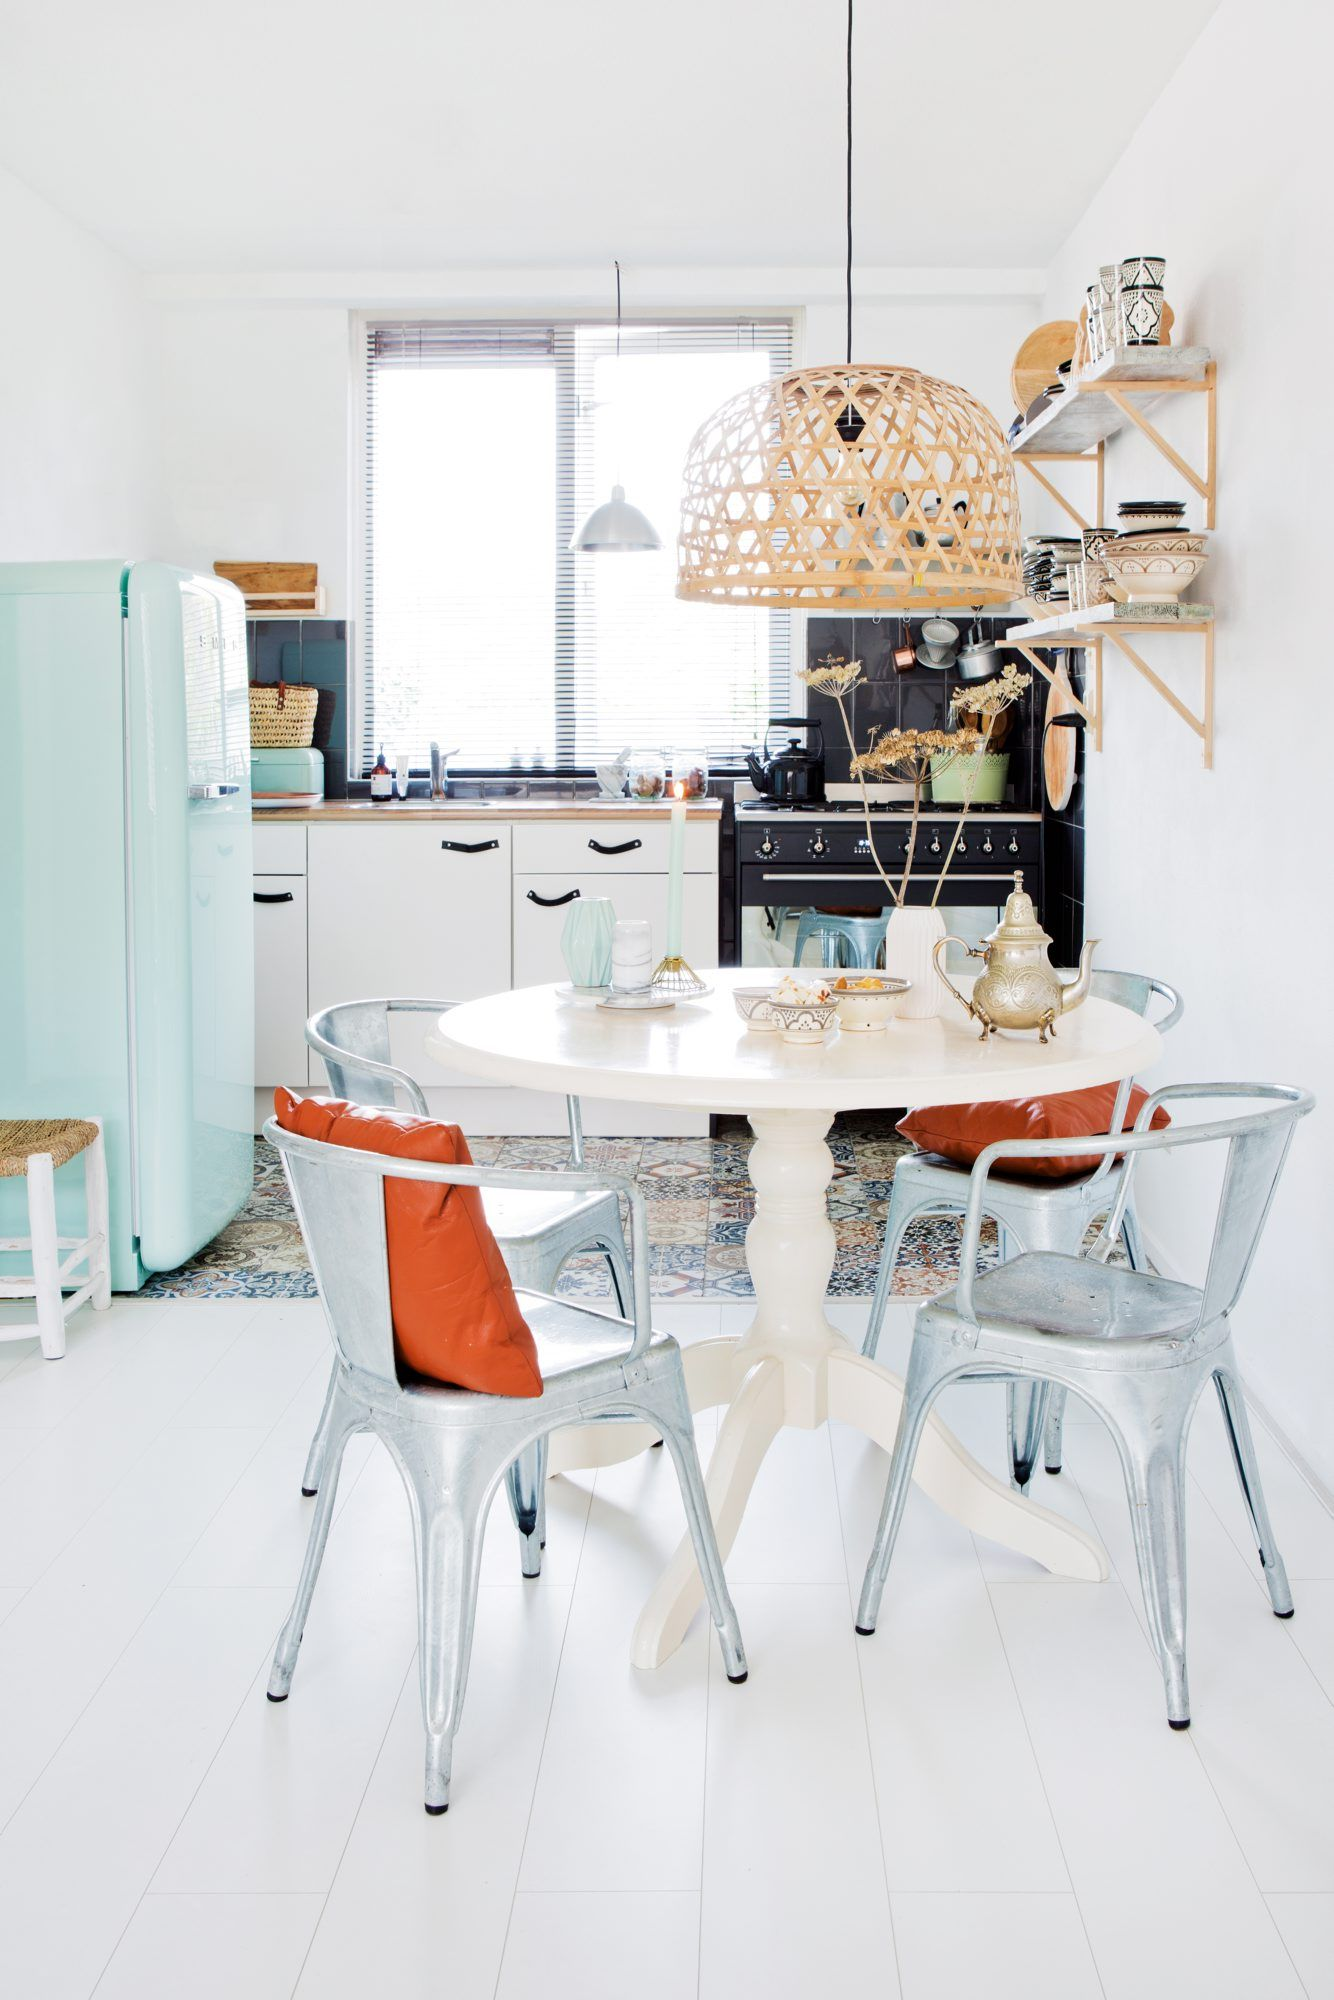 Küchendesign kleiner raum cute little kitchen with light real fridge and matching chairs